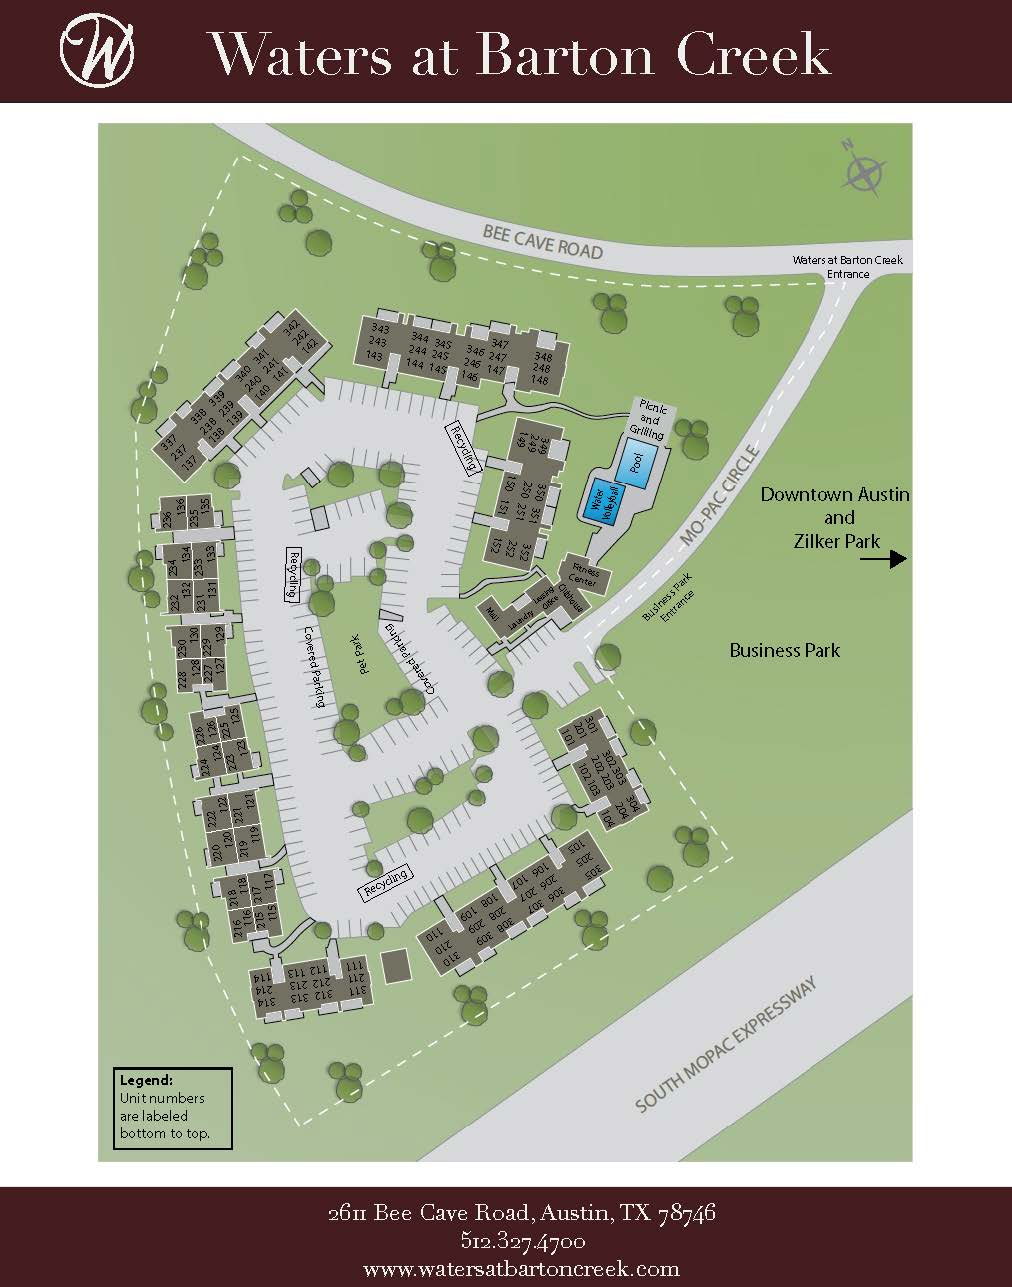 WATERS at Barton Creek Site Plan